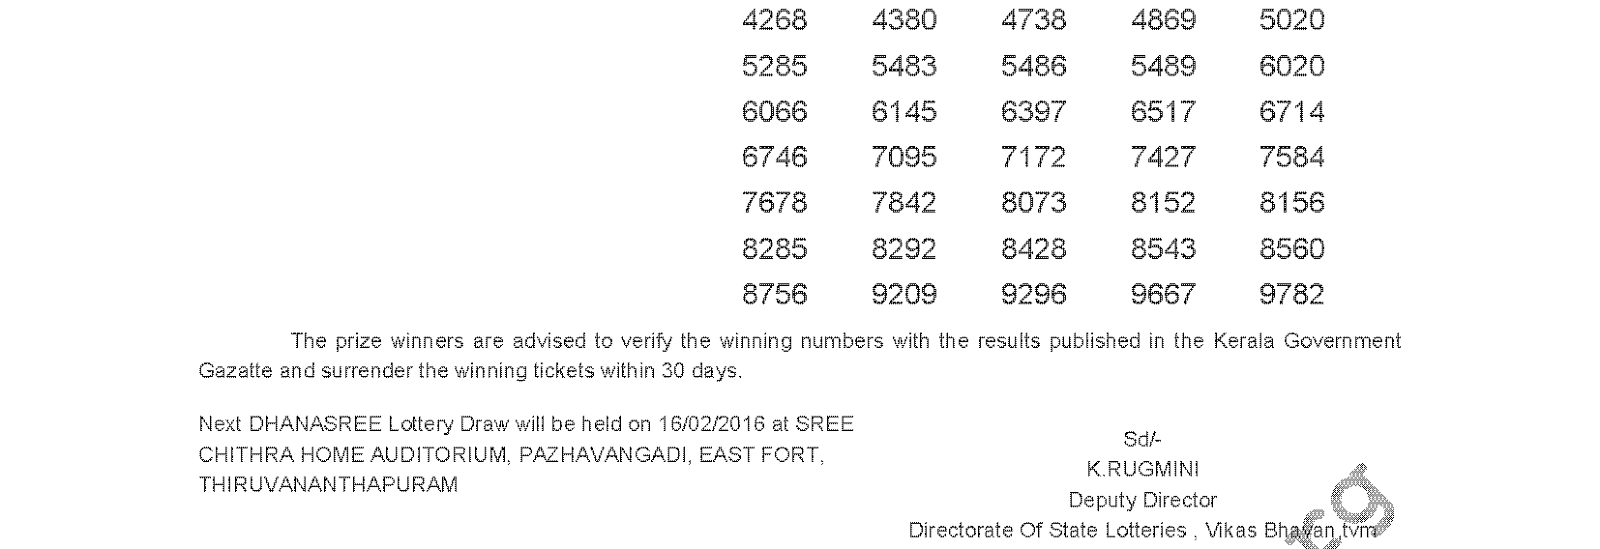 DHANASREE Lottery DS 223 Result 09-02-2016